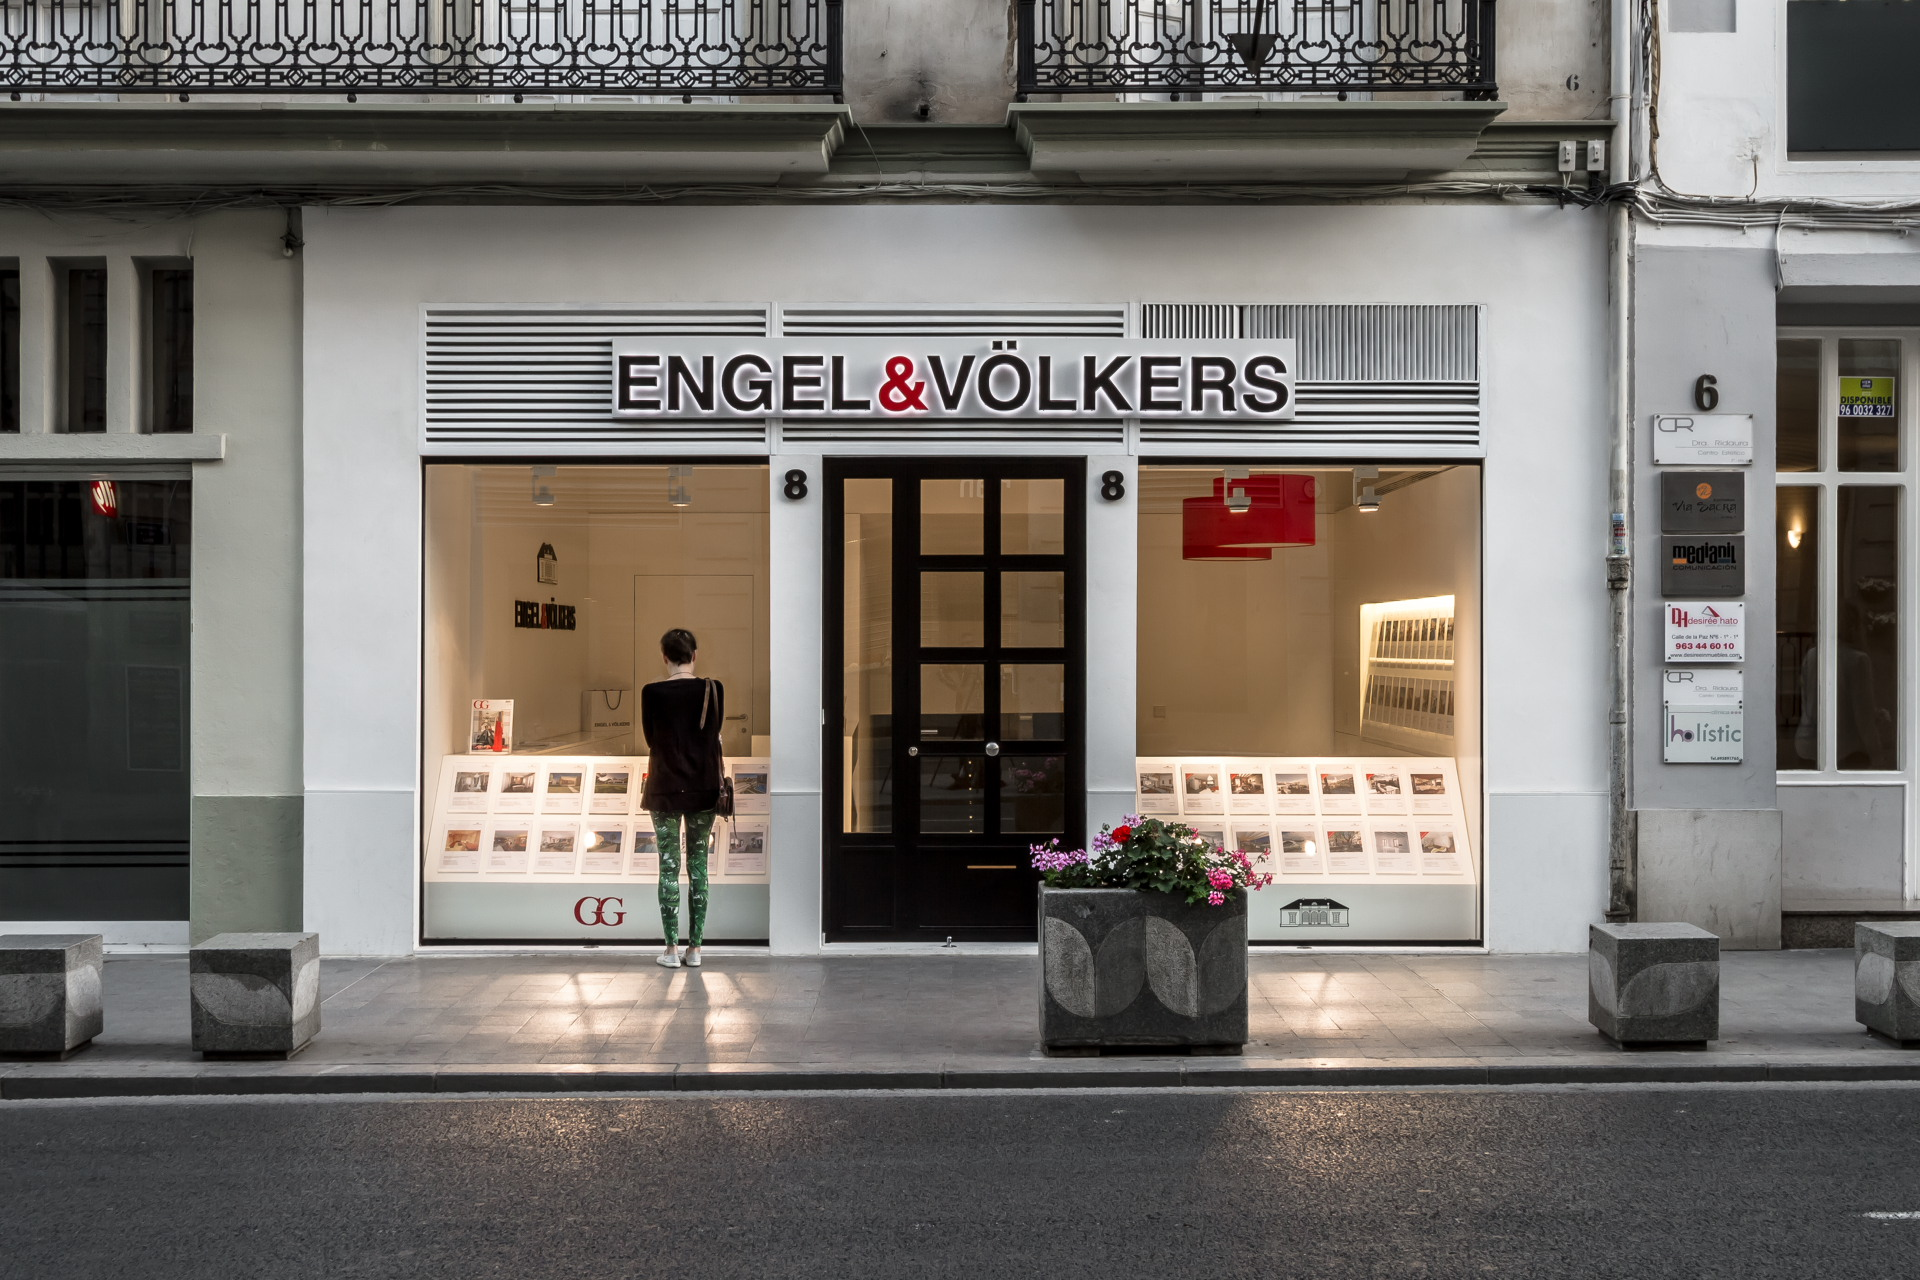 Germ n cabo fotograf a de arquitectura - Engel and wolkers ...